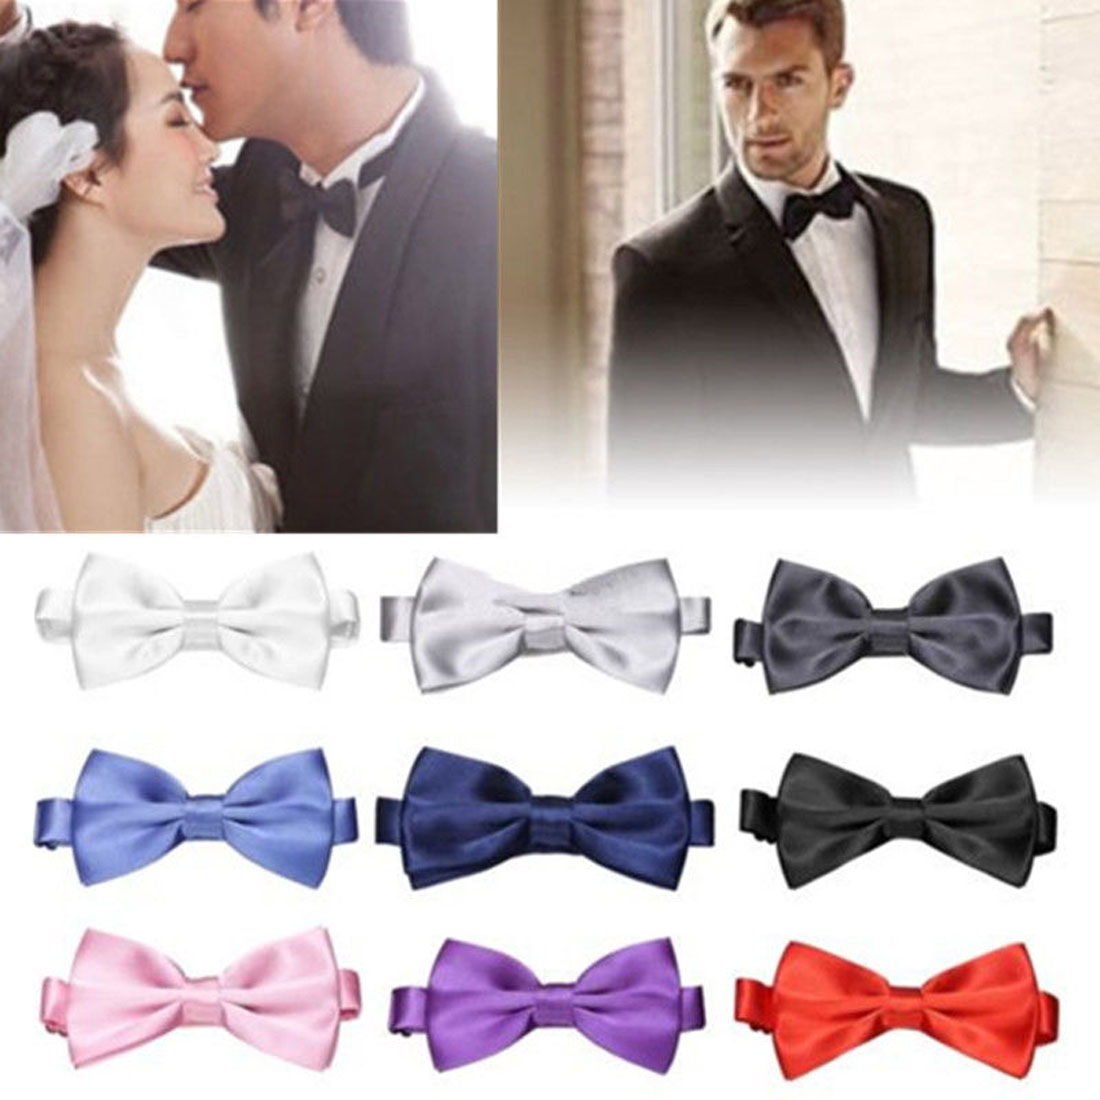 Hot Sale 1PC Gentleman Men Classic Satin Bowtie Necktie For Wedding Party Adjustable Male Butterfly Bow Tie Knot For Man Gifts